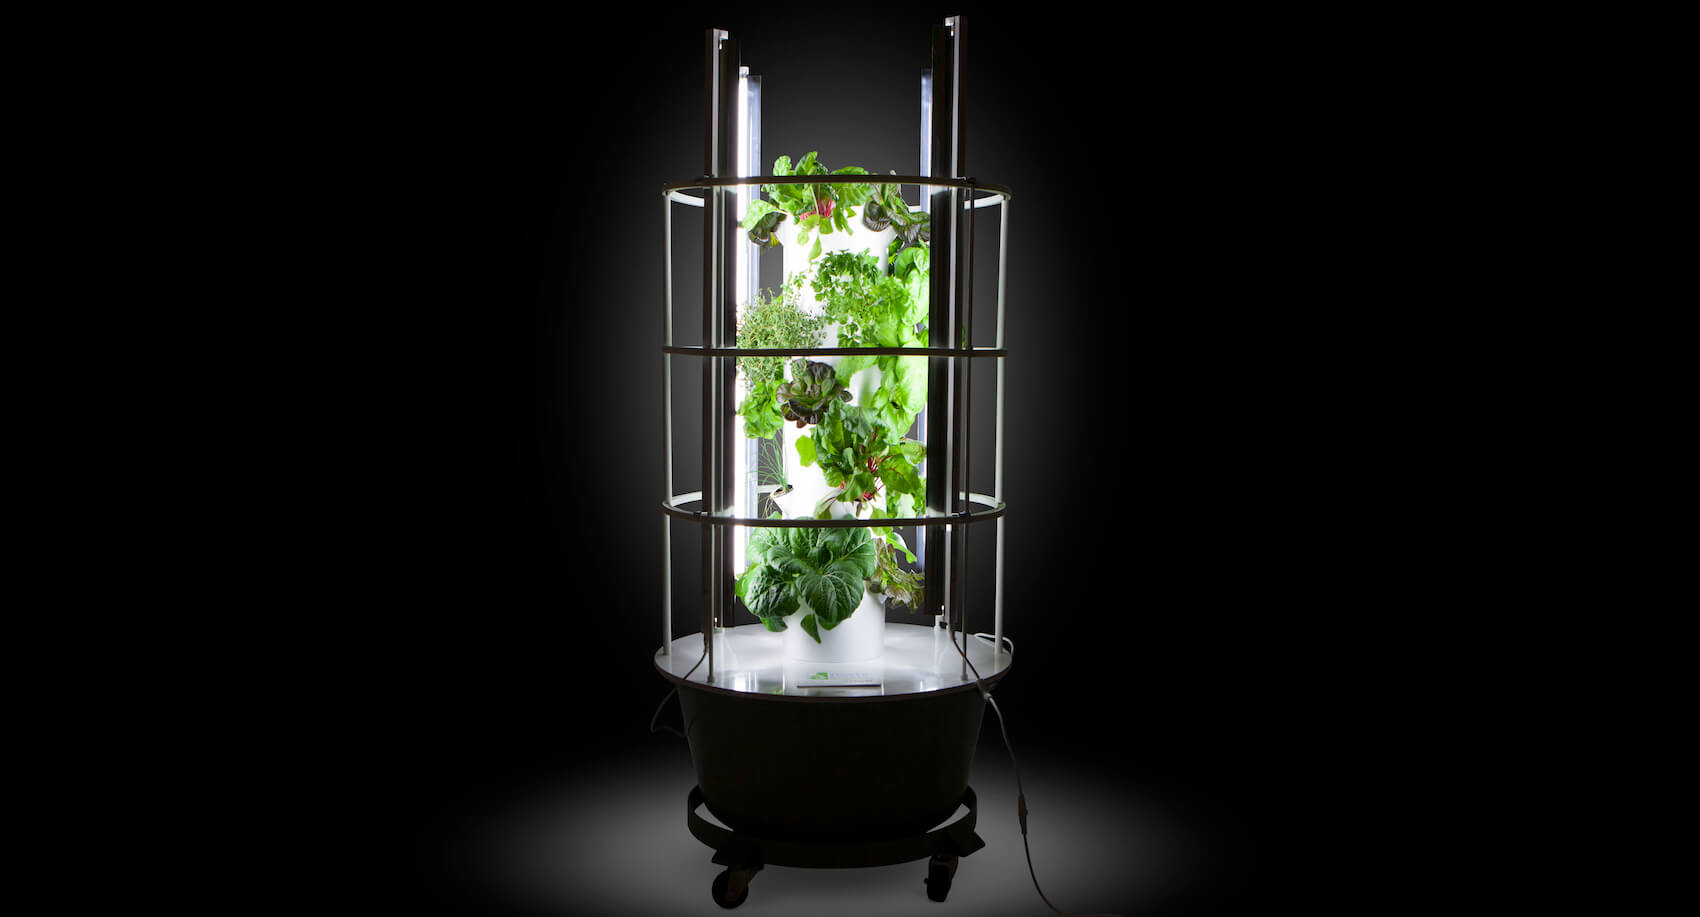 Tower Garden System Promises A Low Maintenance Indoor ...